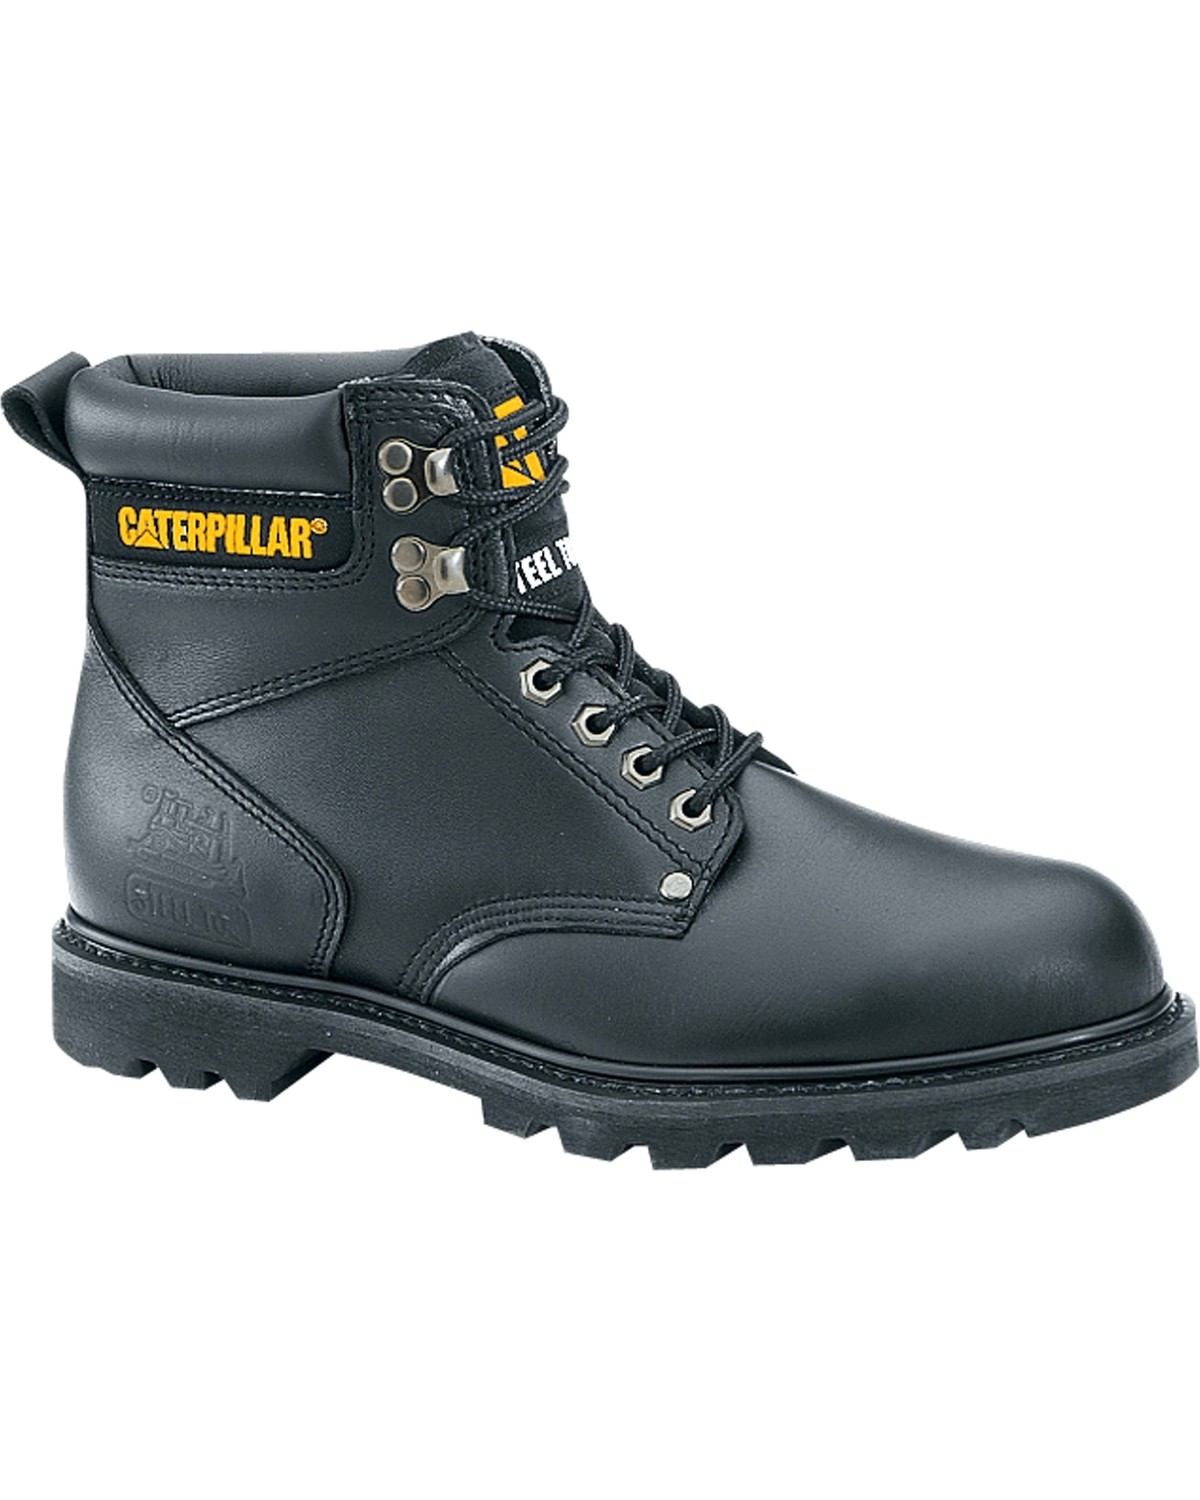 CAT Mens Second Shift Steel Toe Work Boots, Black, hi-res